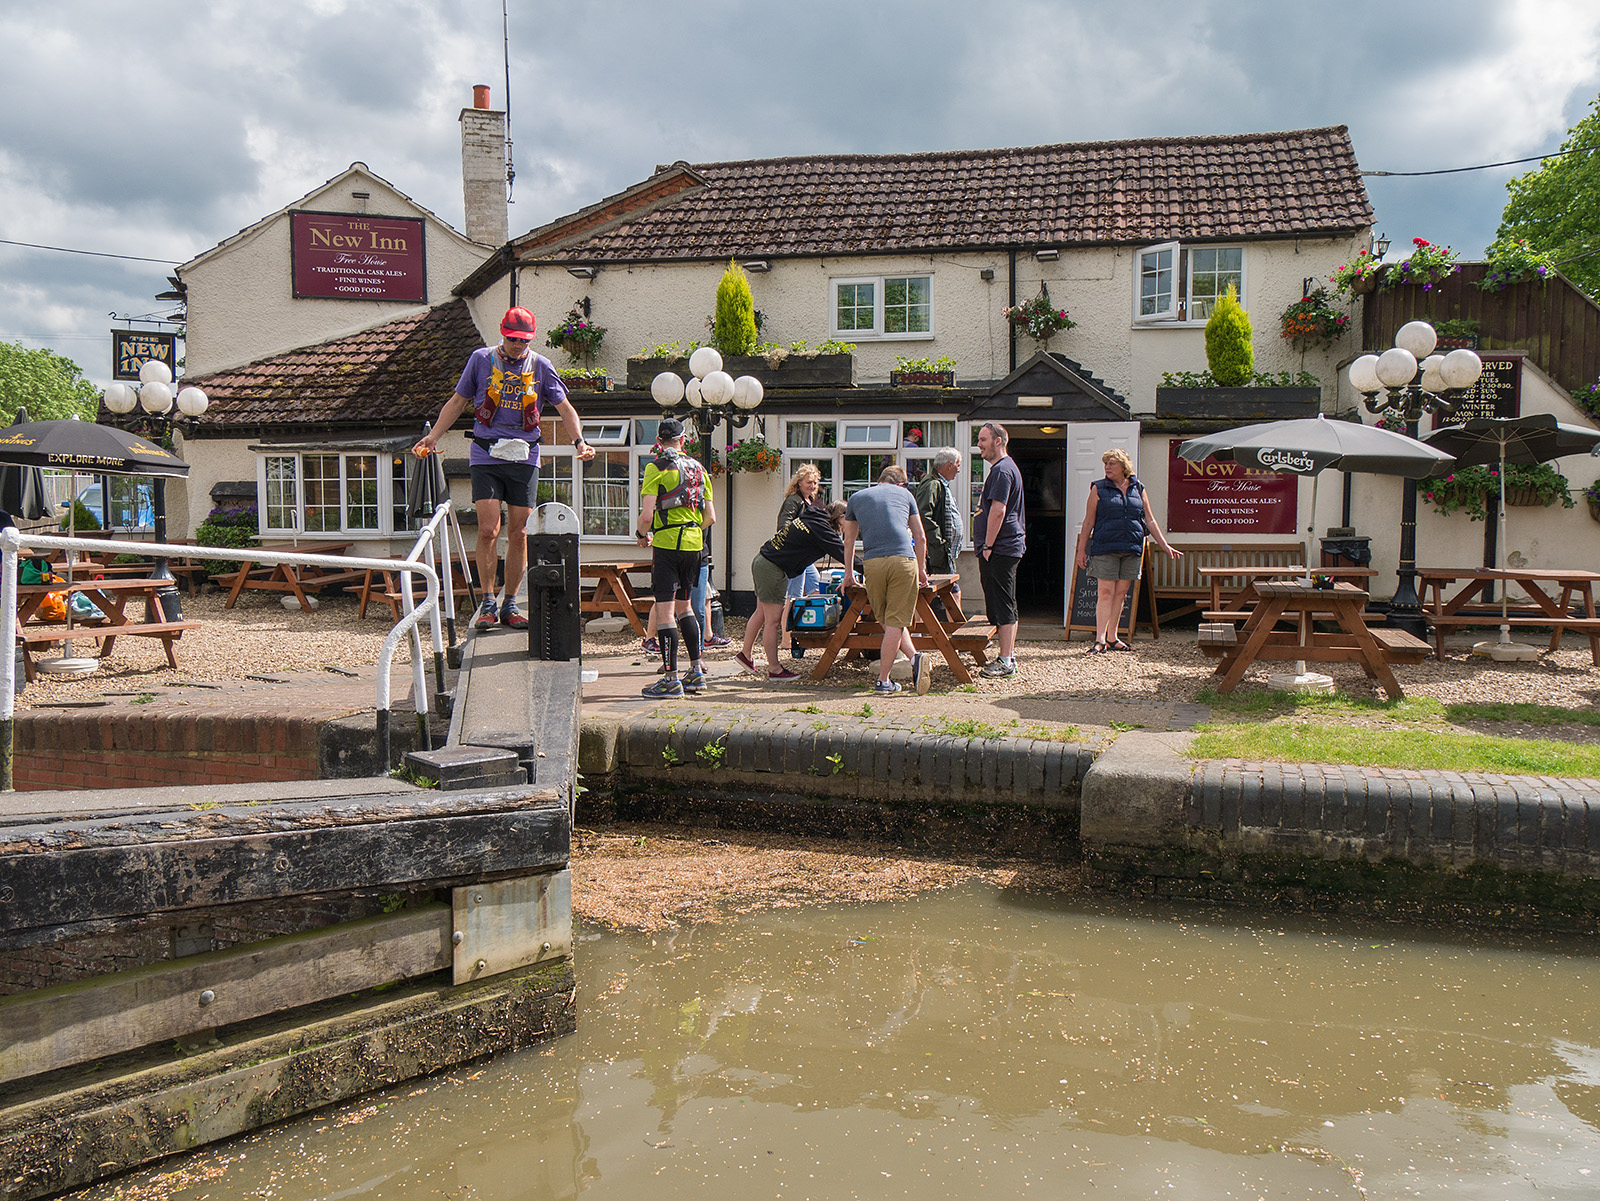 Runners from the Grand Union 145 mile race at the New Inn pub at Long Buckby